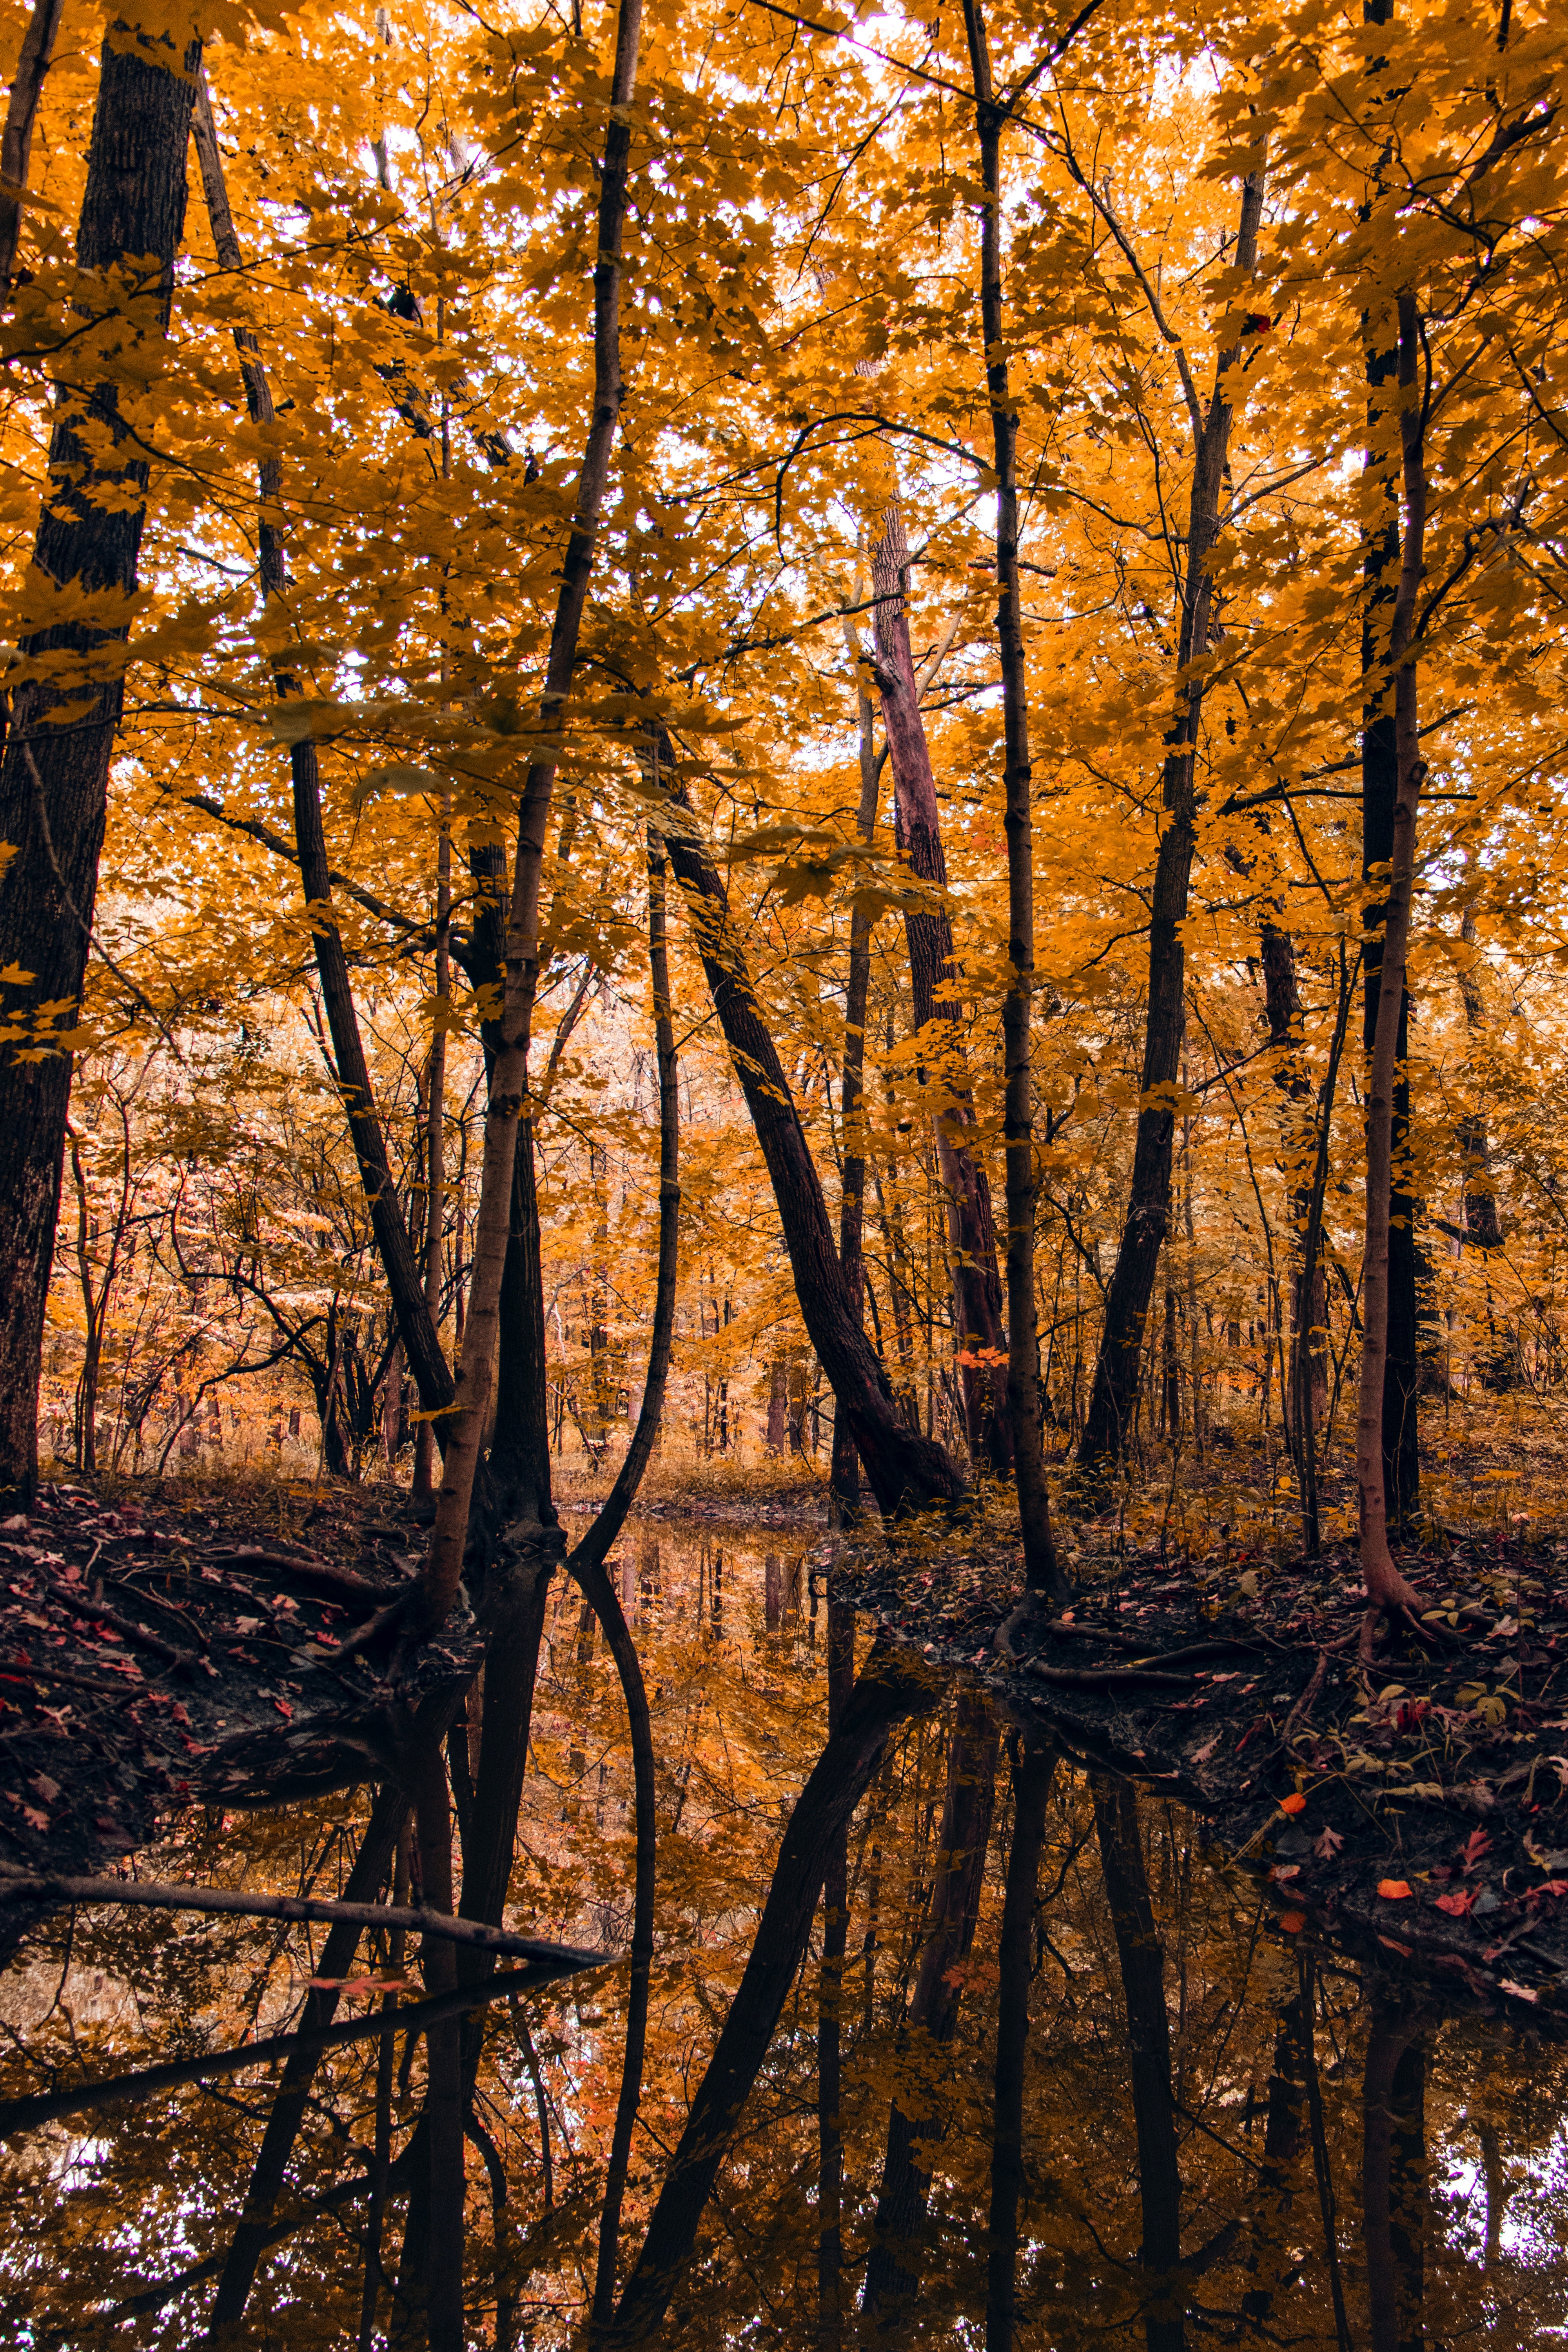 125490 download wallpaper Landscape, Nature, Rivers, Trees, Autumn, Forest screensavers and pictures for free